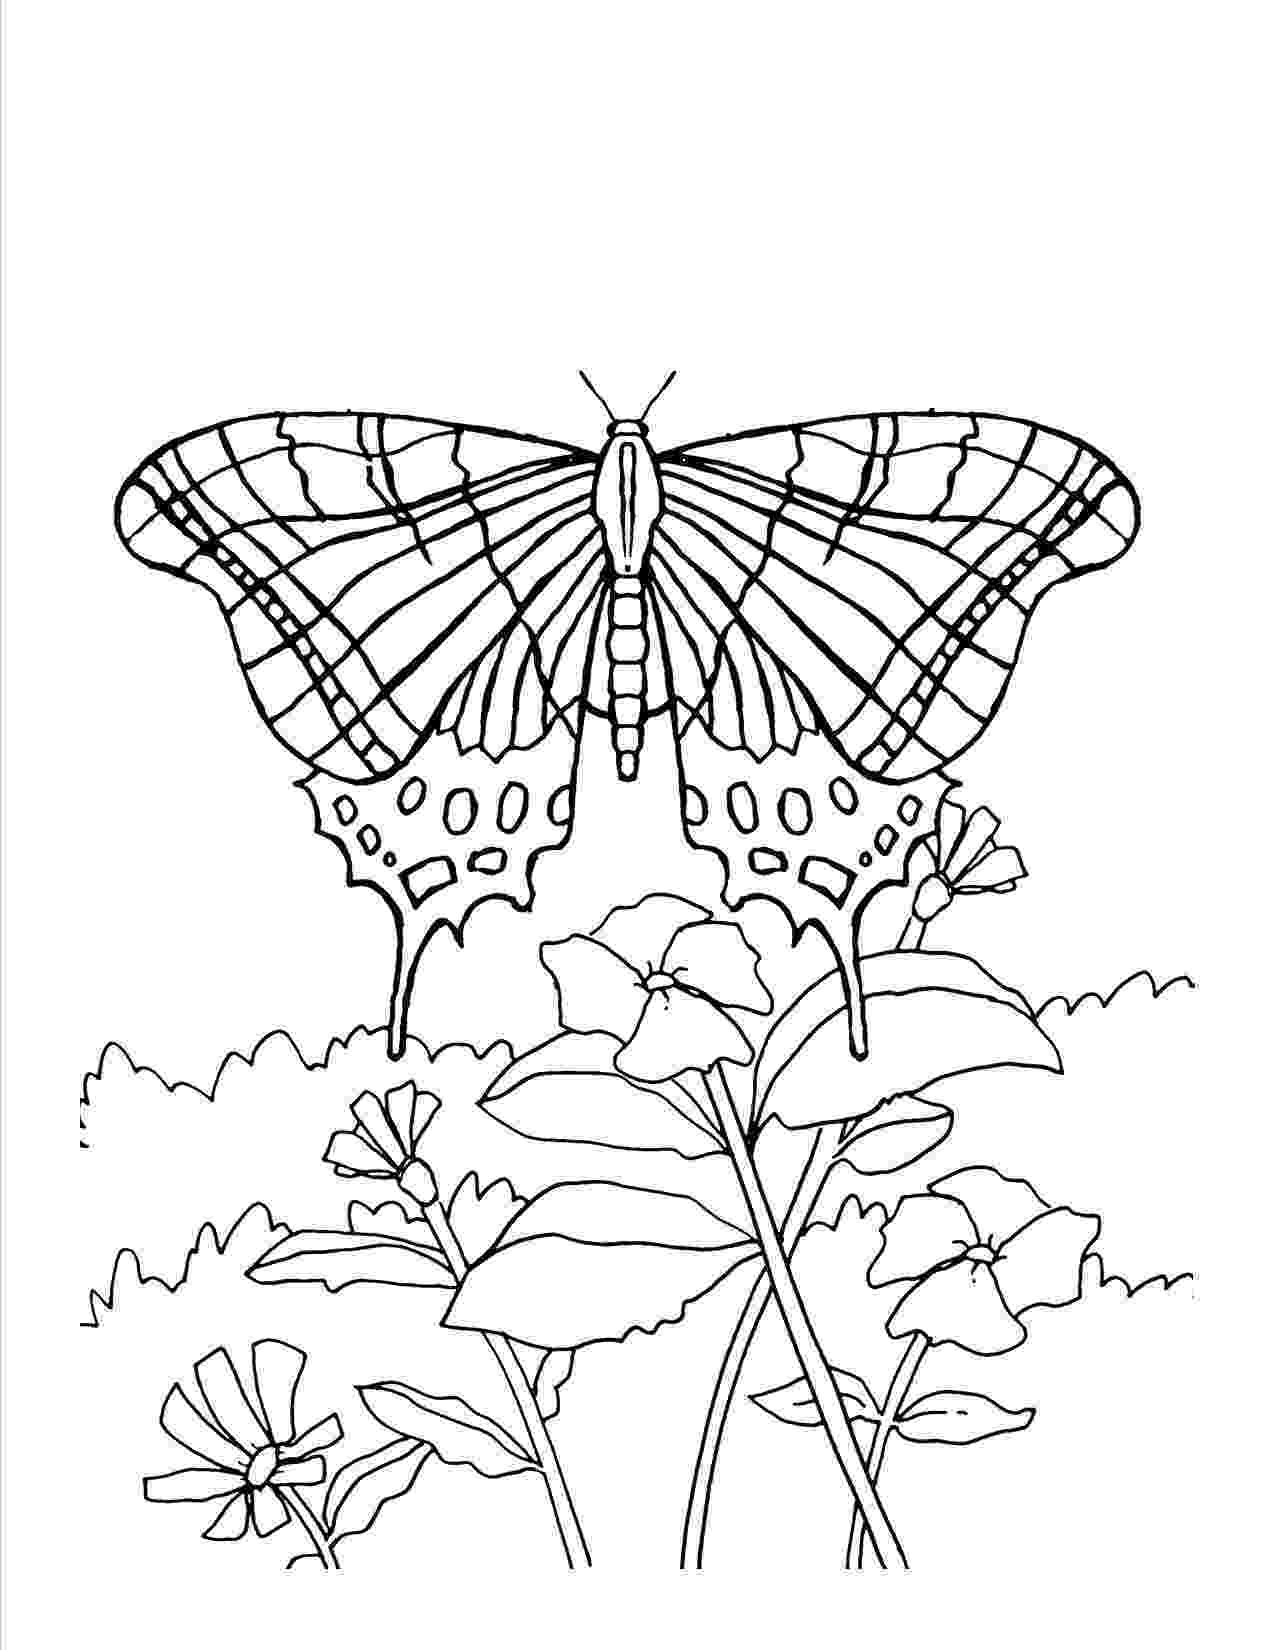 printable coloring pages of flowers and butterflies butterfly and flowers coloring page flowers of pages printable coloring butterflies and